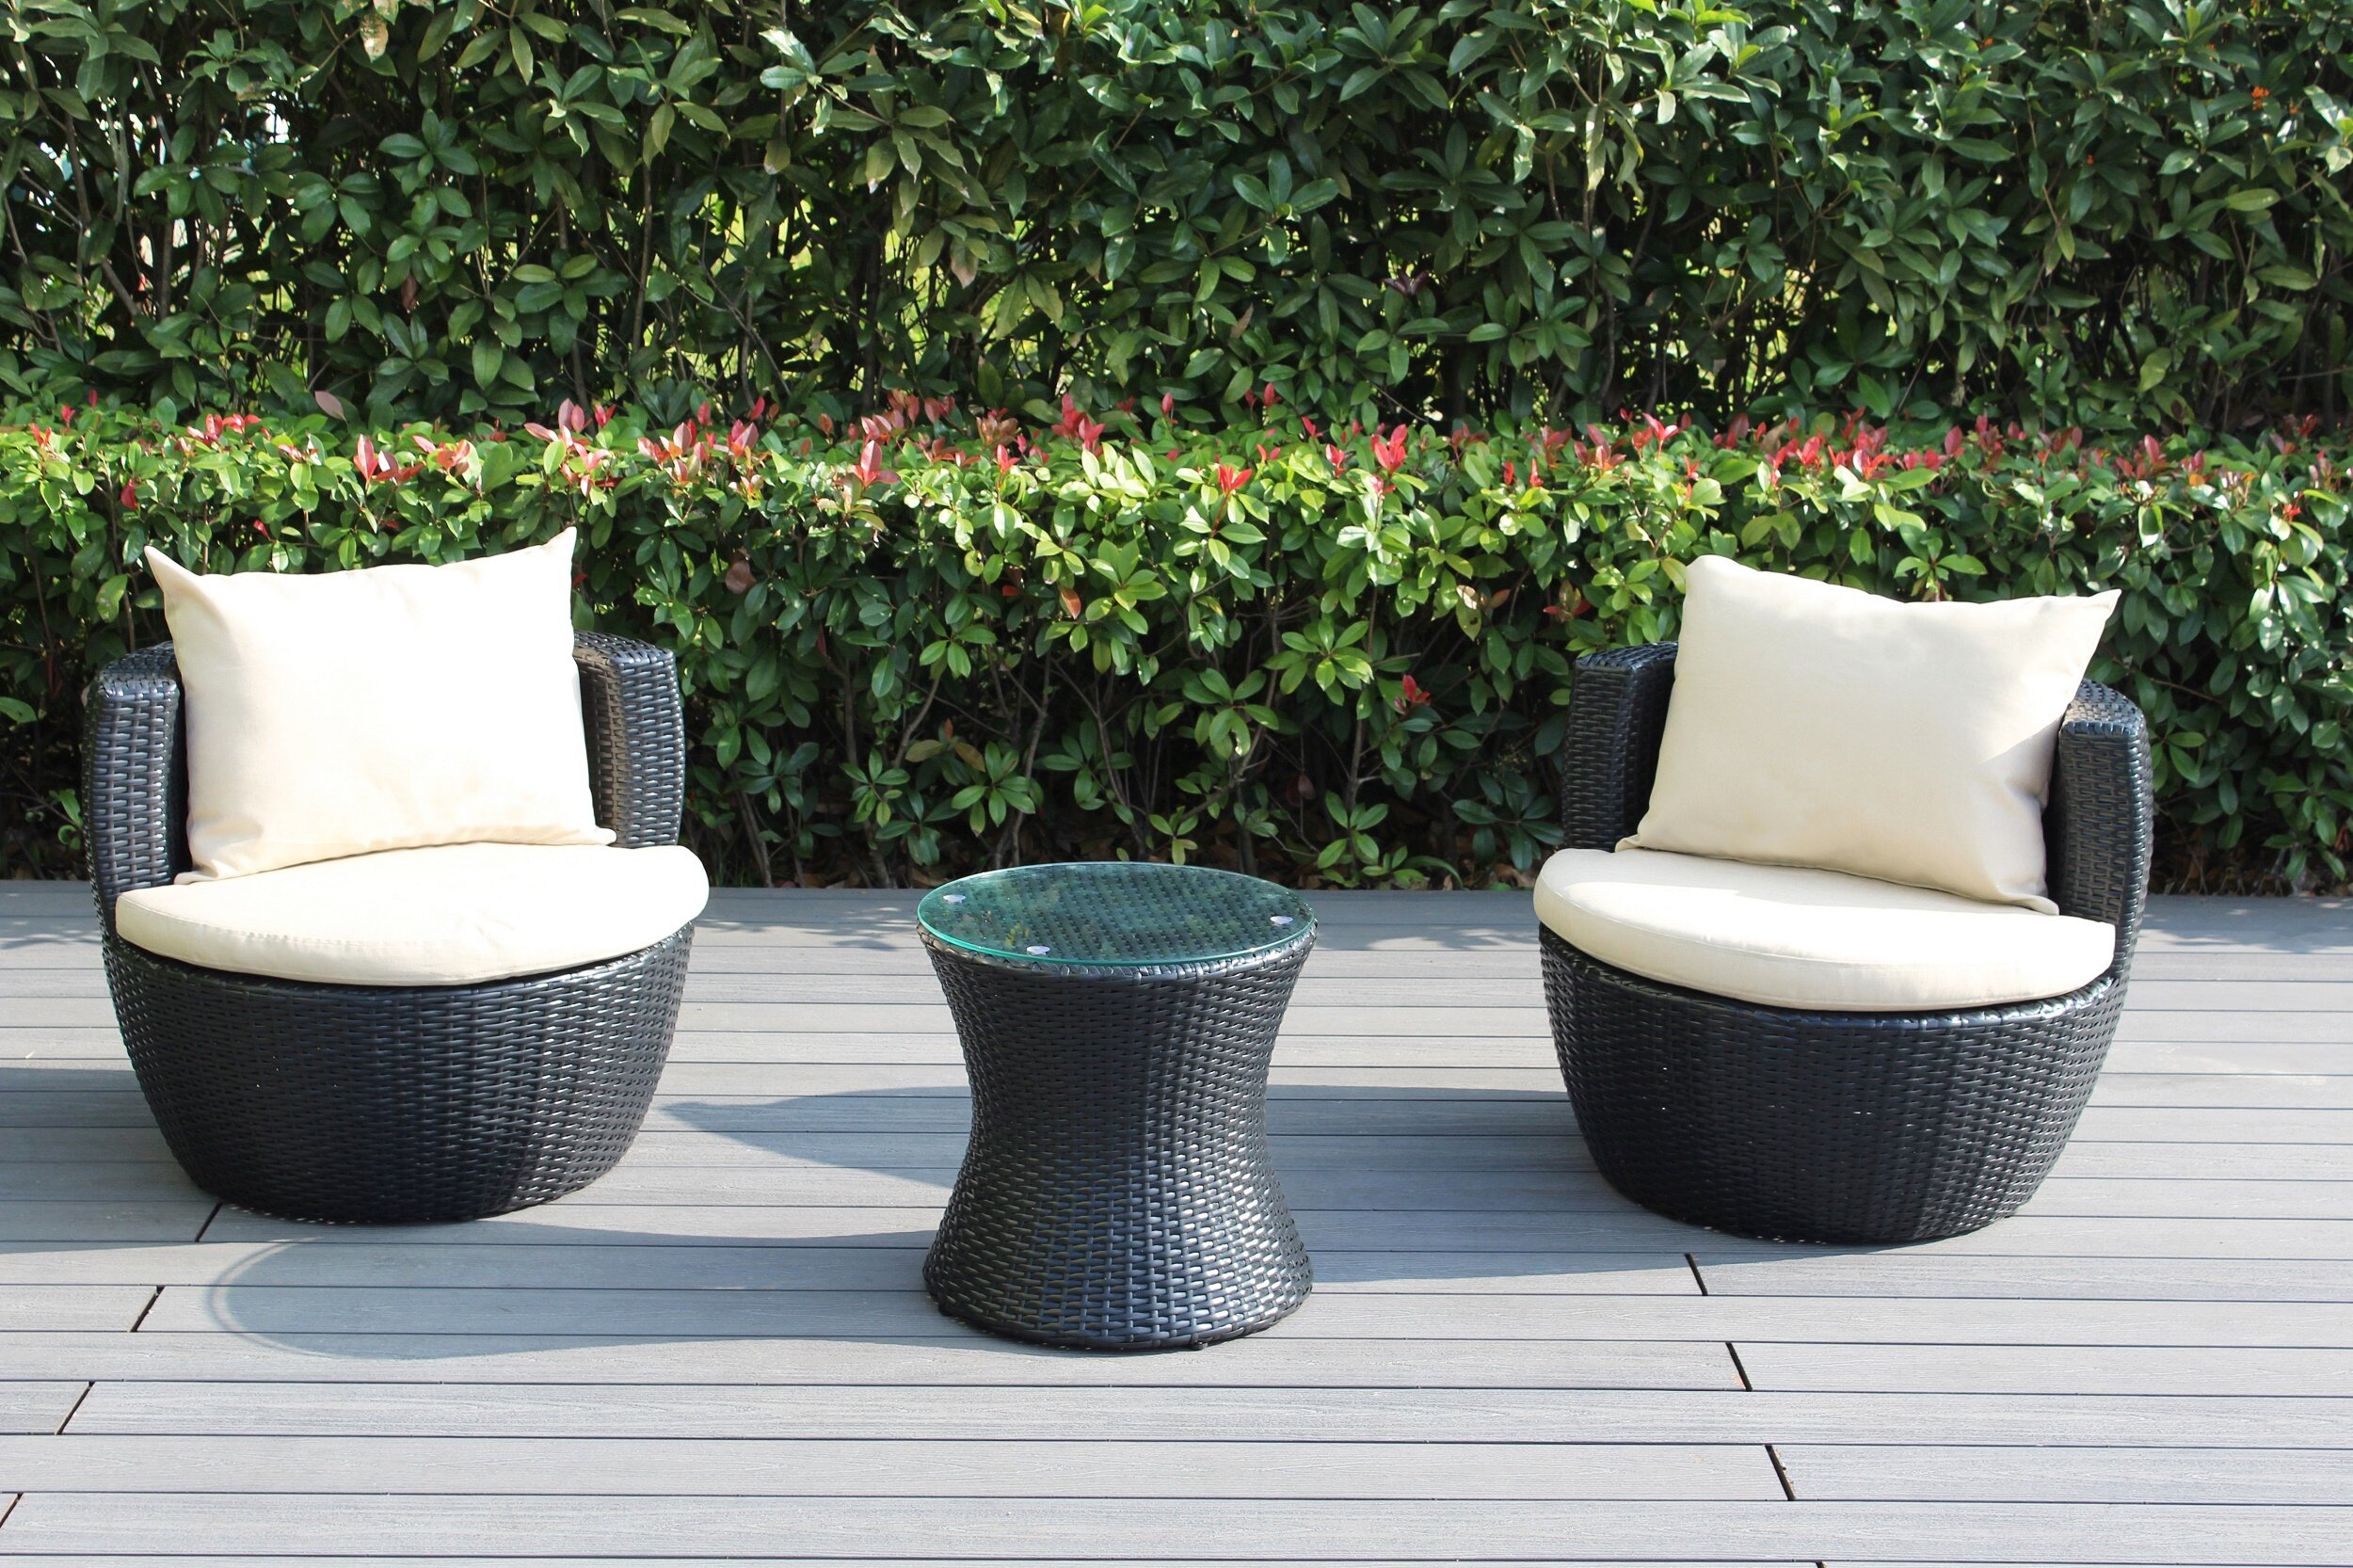 Ebern Designs Elkport 2 Piece Rattan Seating Group With Cushions Reviews Wayfair